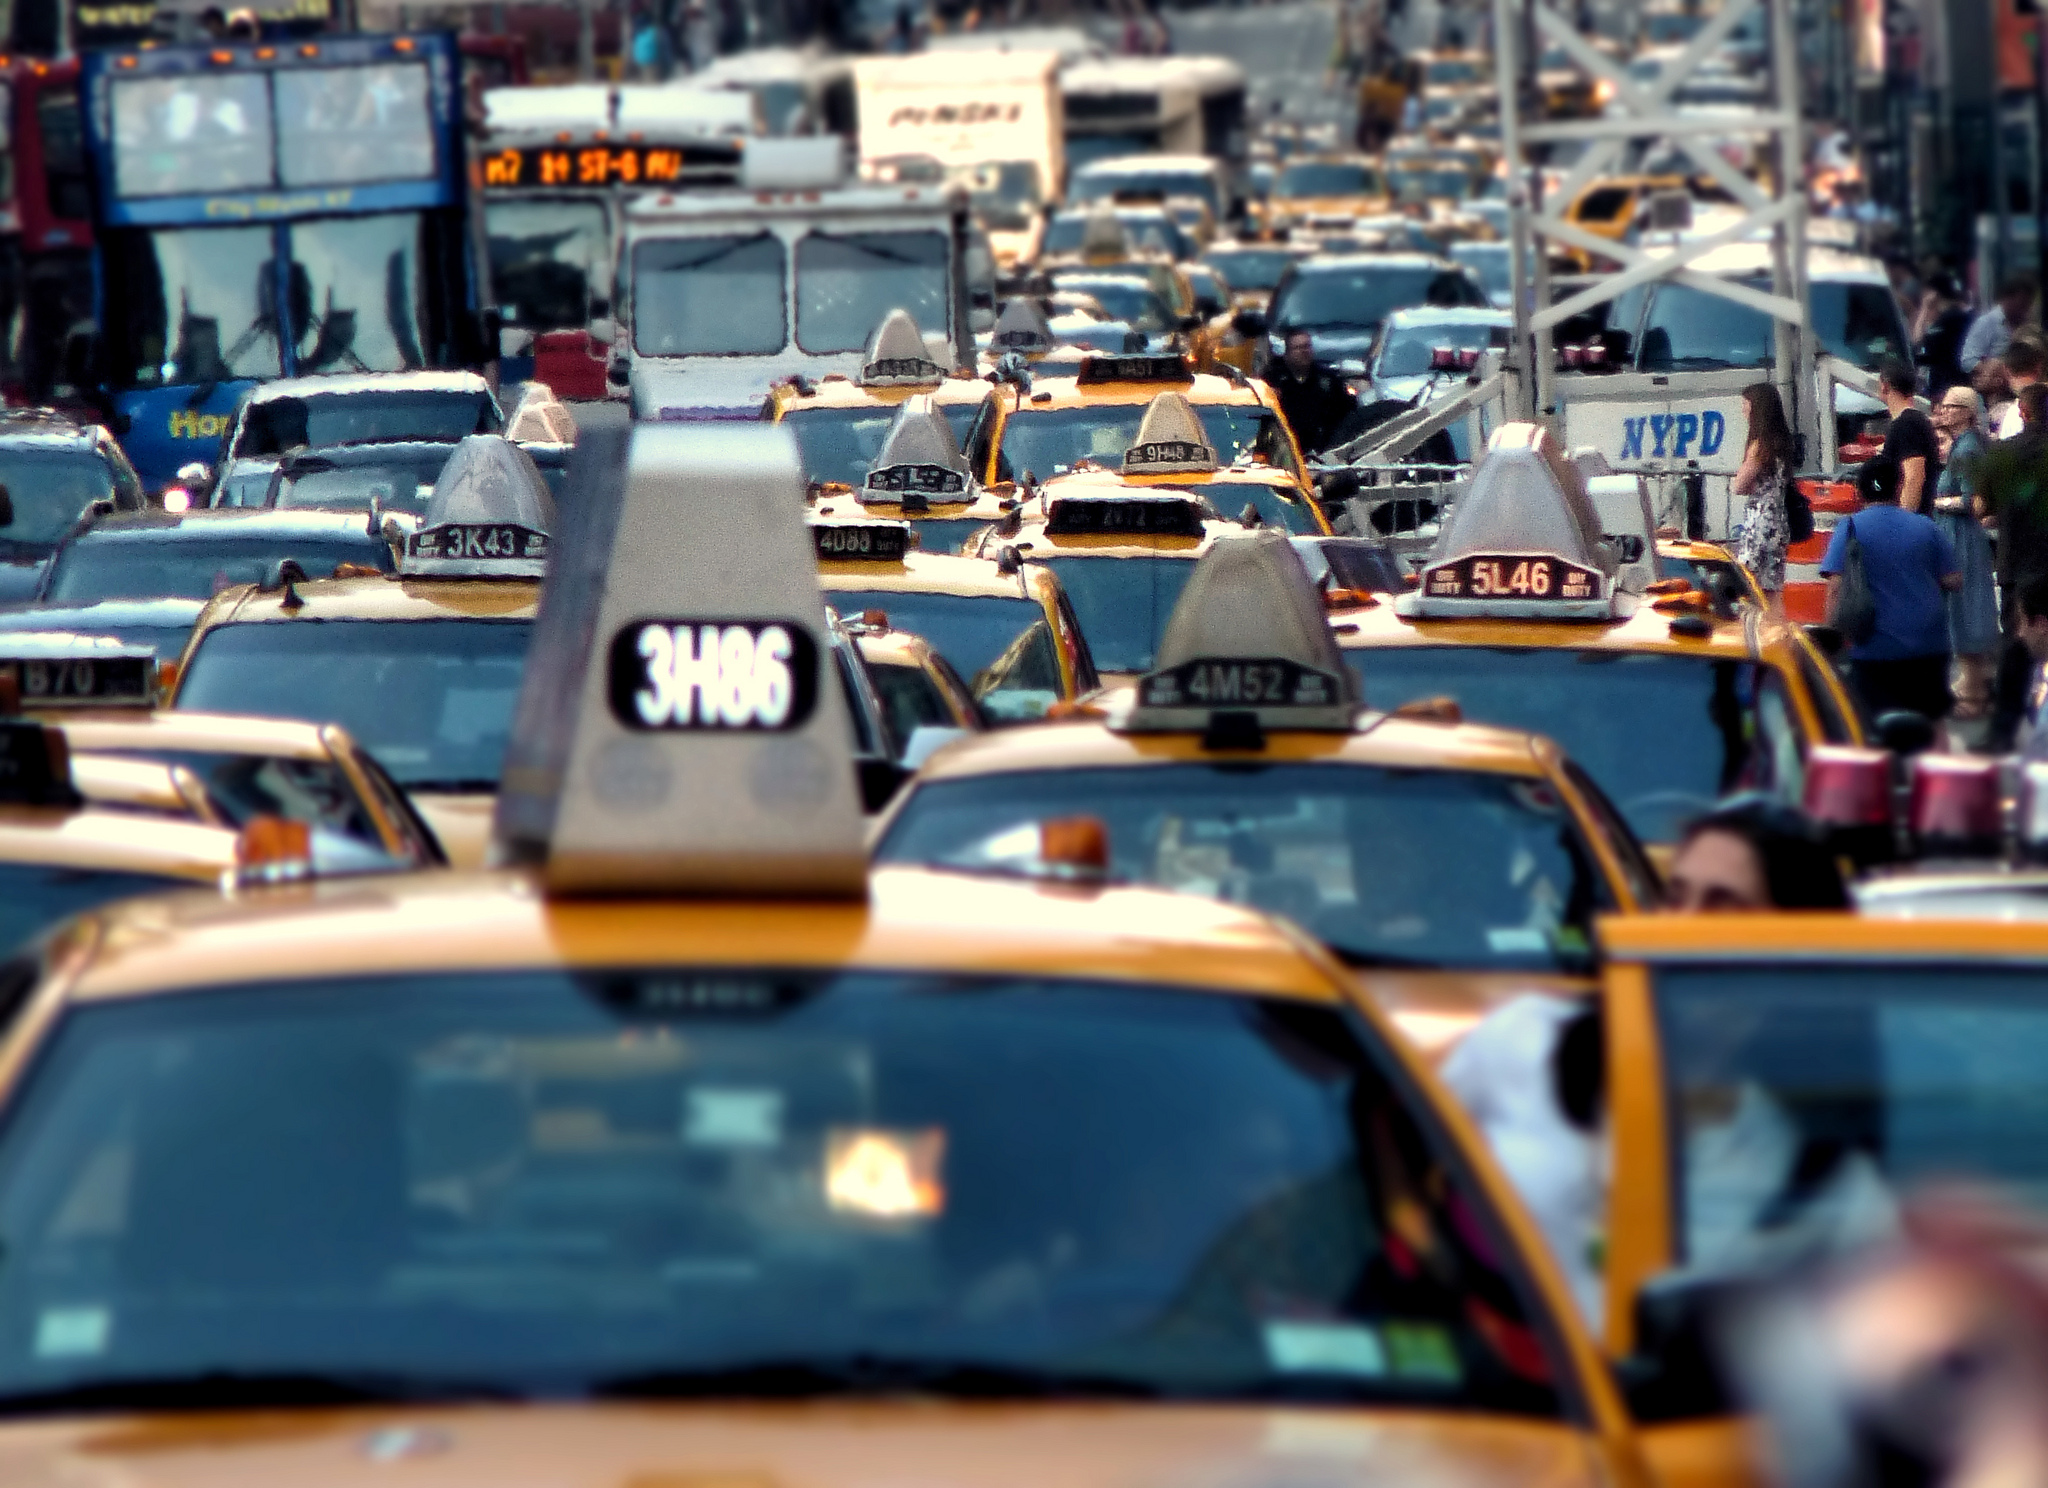 New York: a city that ought to know about traffic! Photo by BK, via Flickr creative commons.